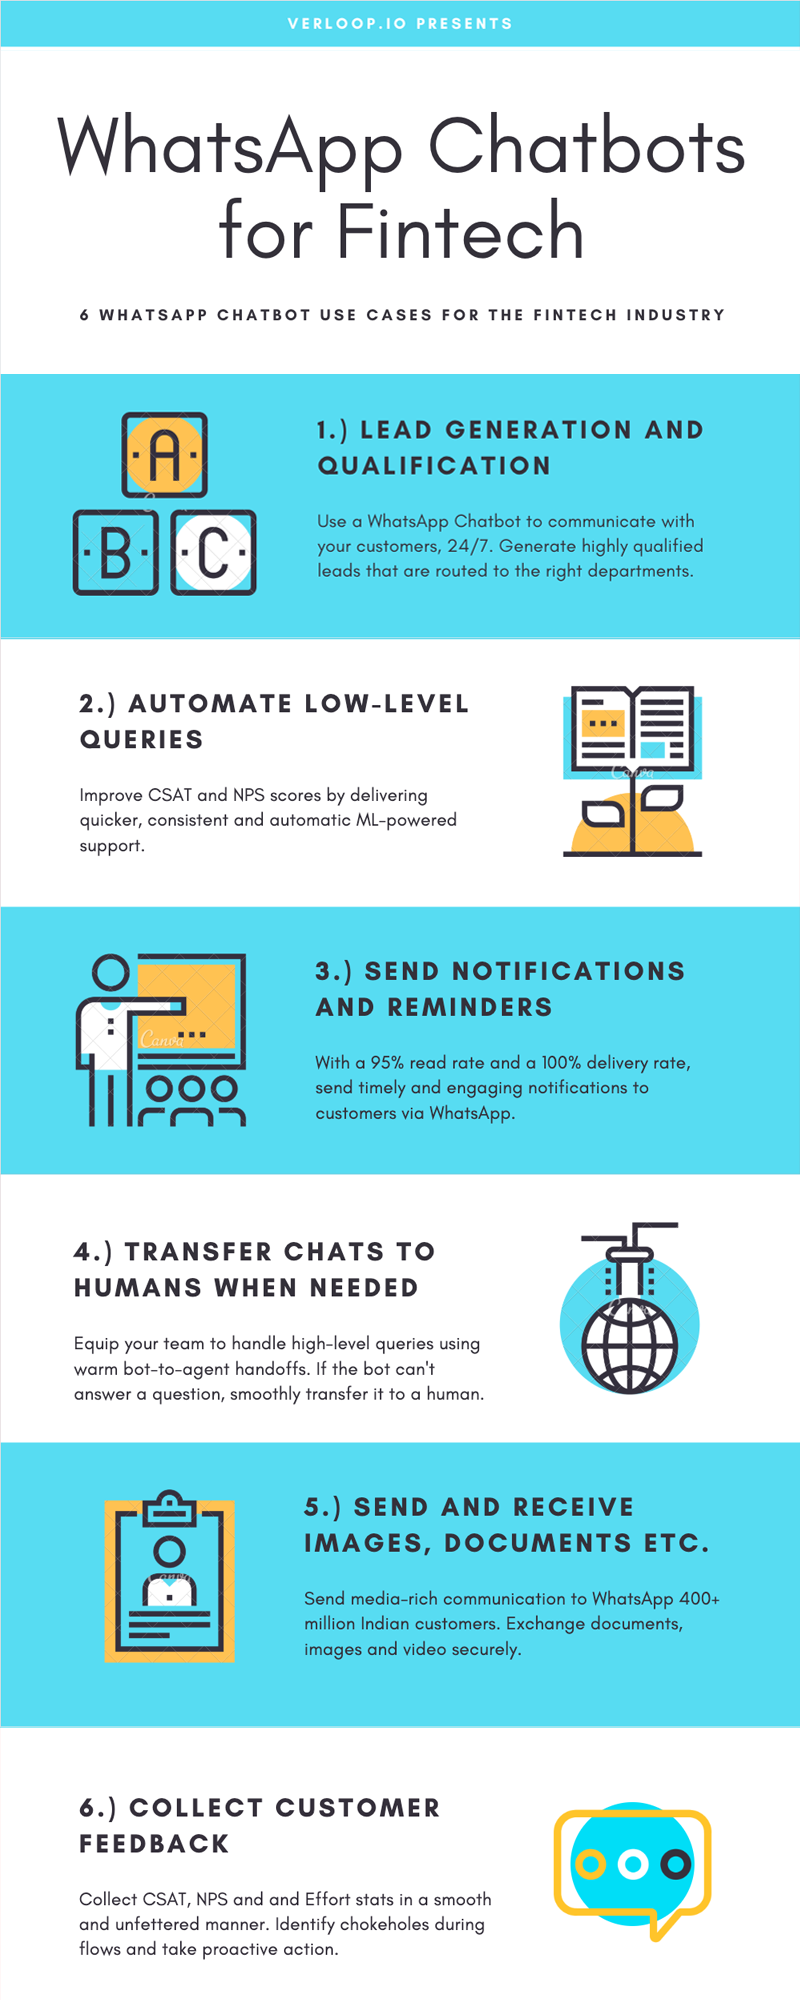 infographic on WhatsApp Chatbots for Fintech